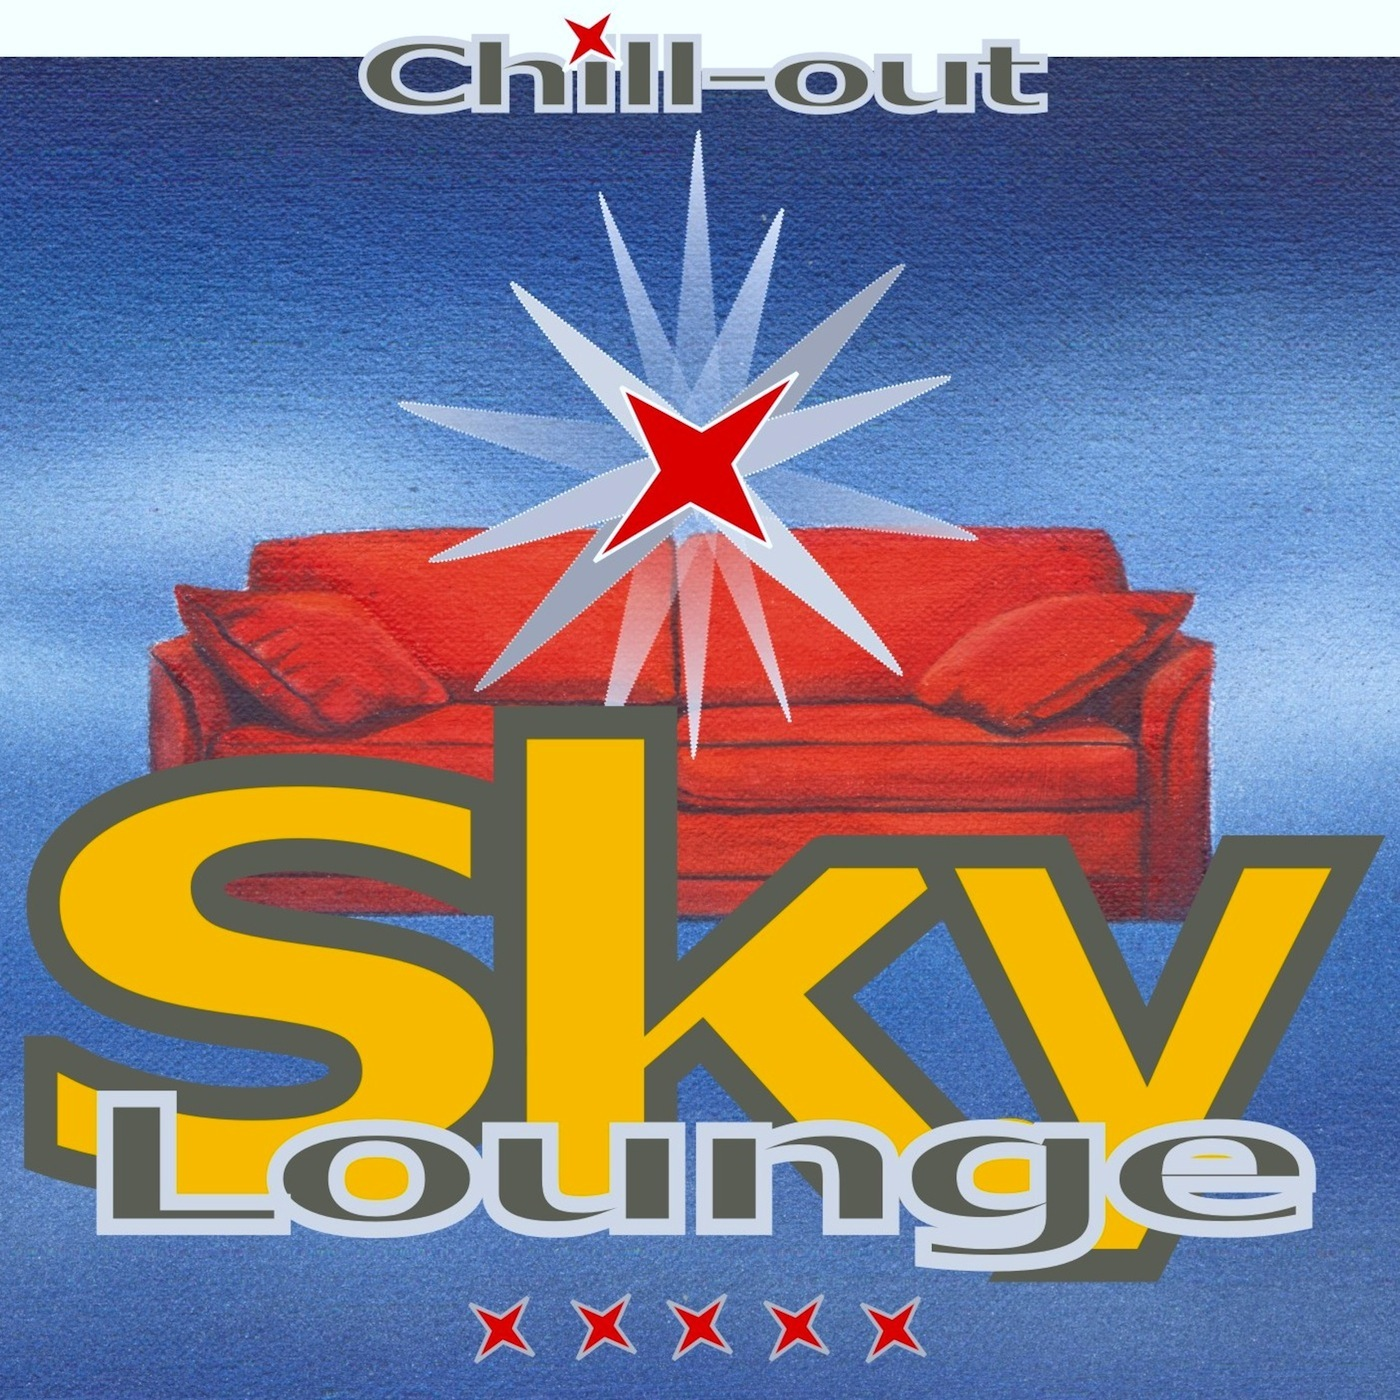 Sky Lounge Chill-out x600